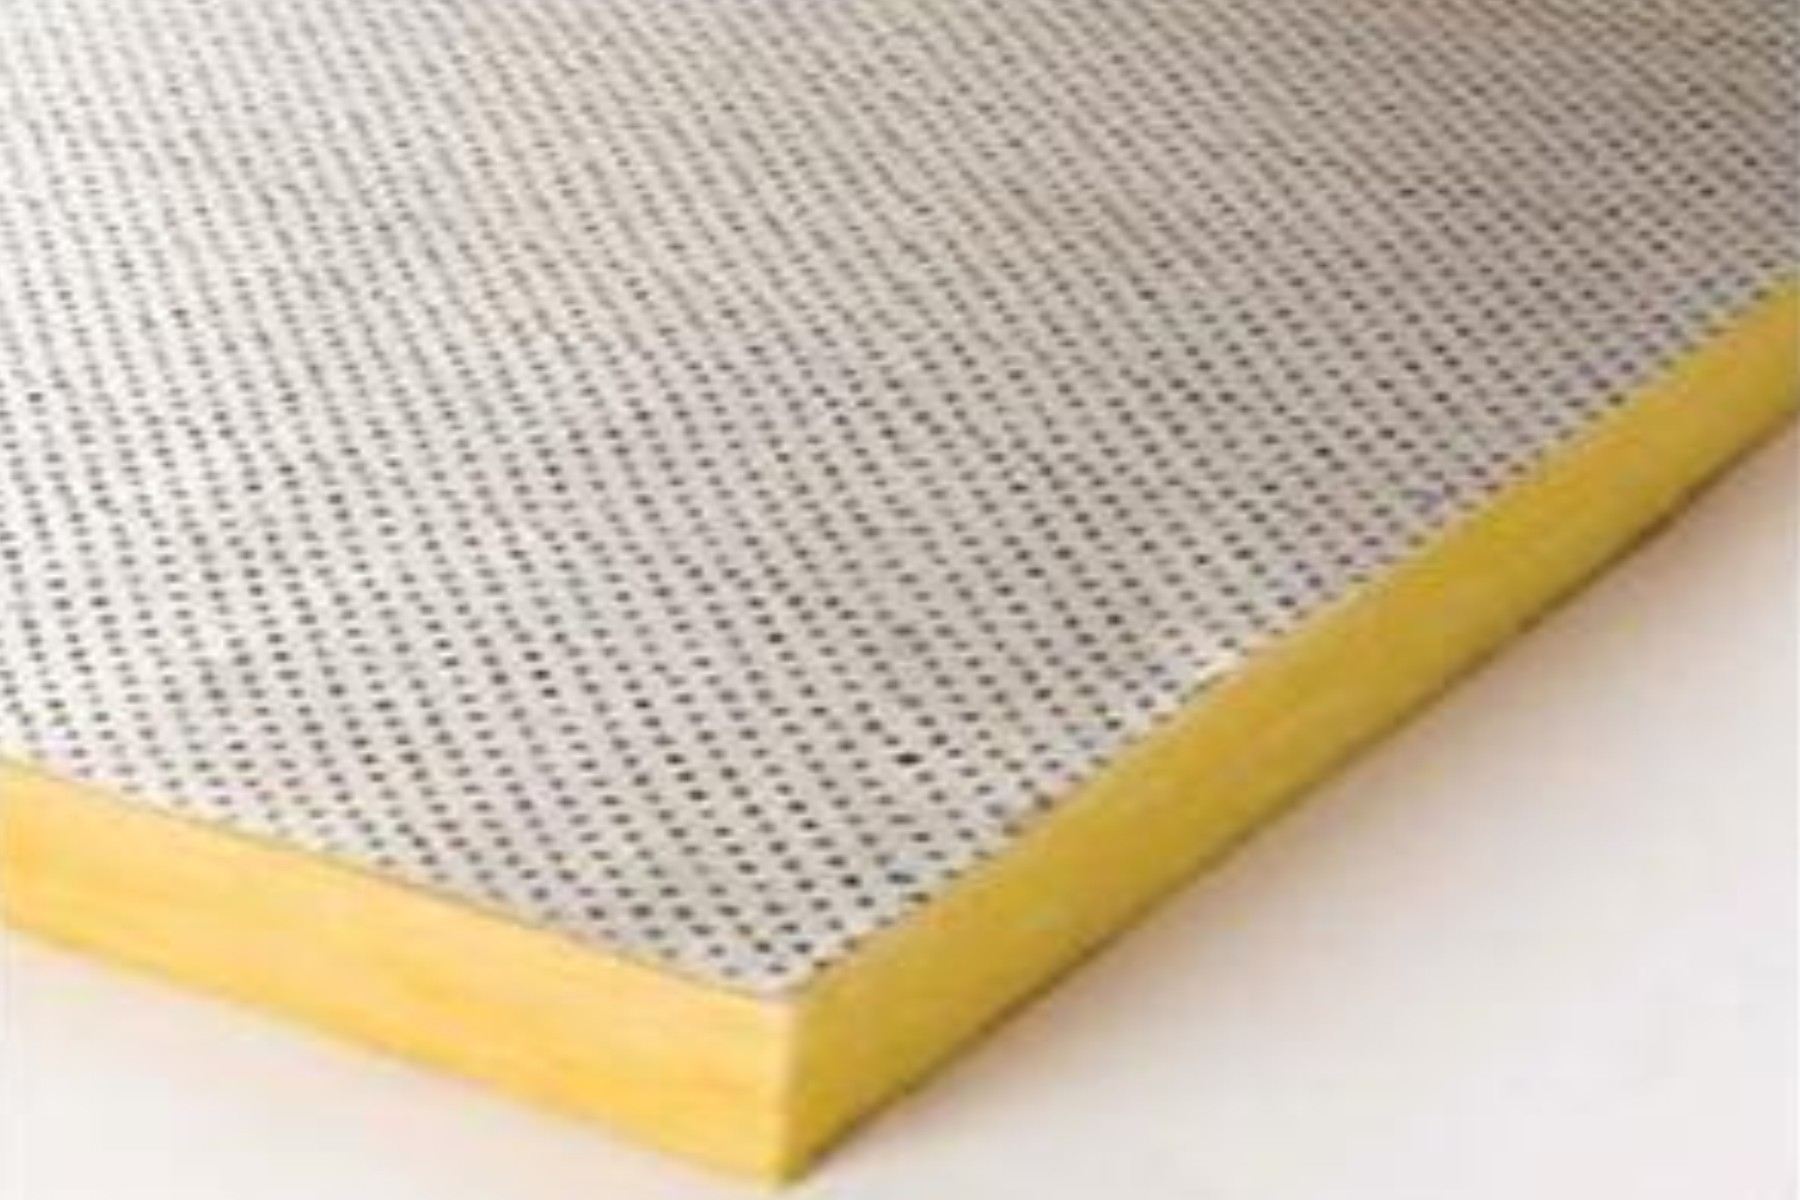 Supertel 32kg M 179 Board Heavy Duty Foil Perforated Faced